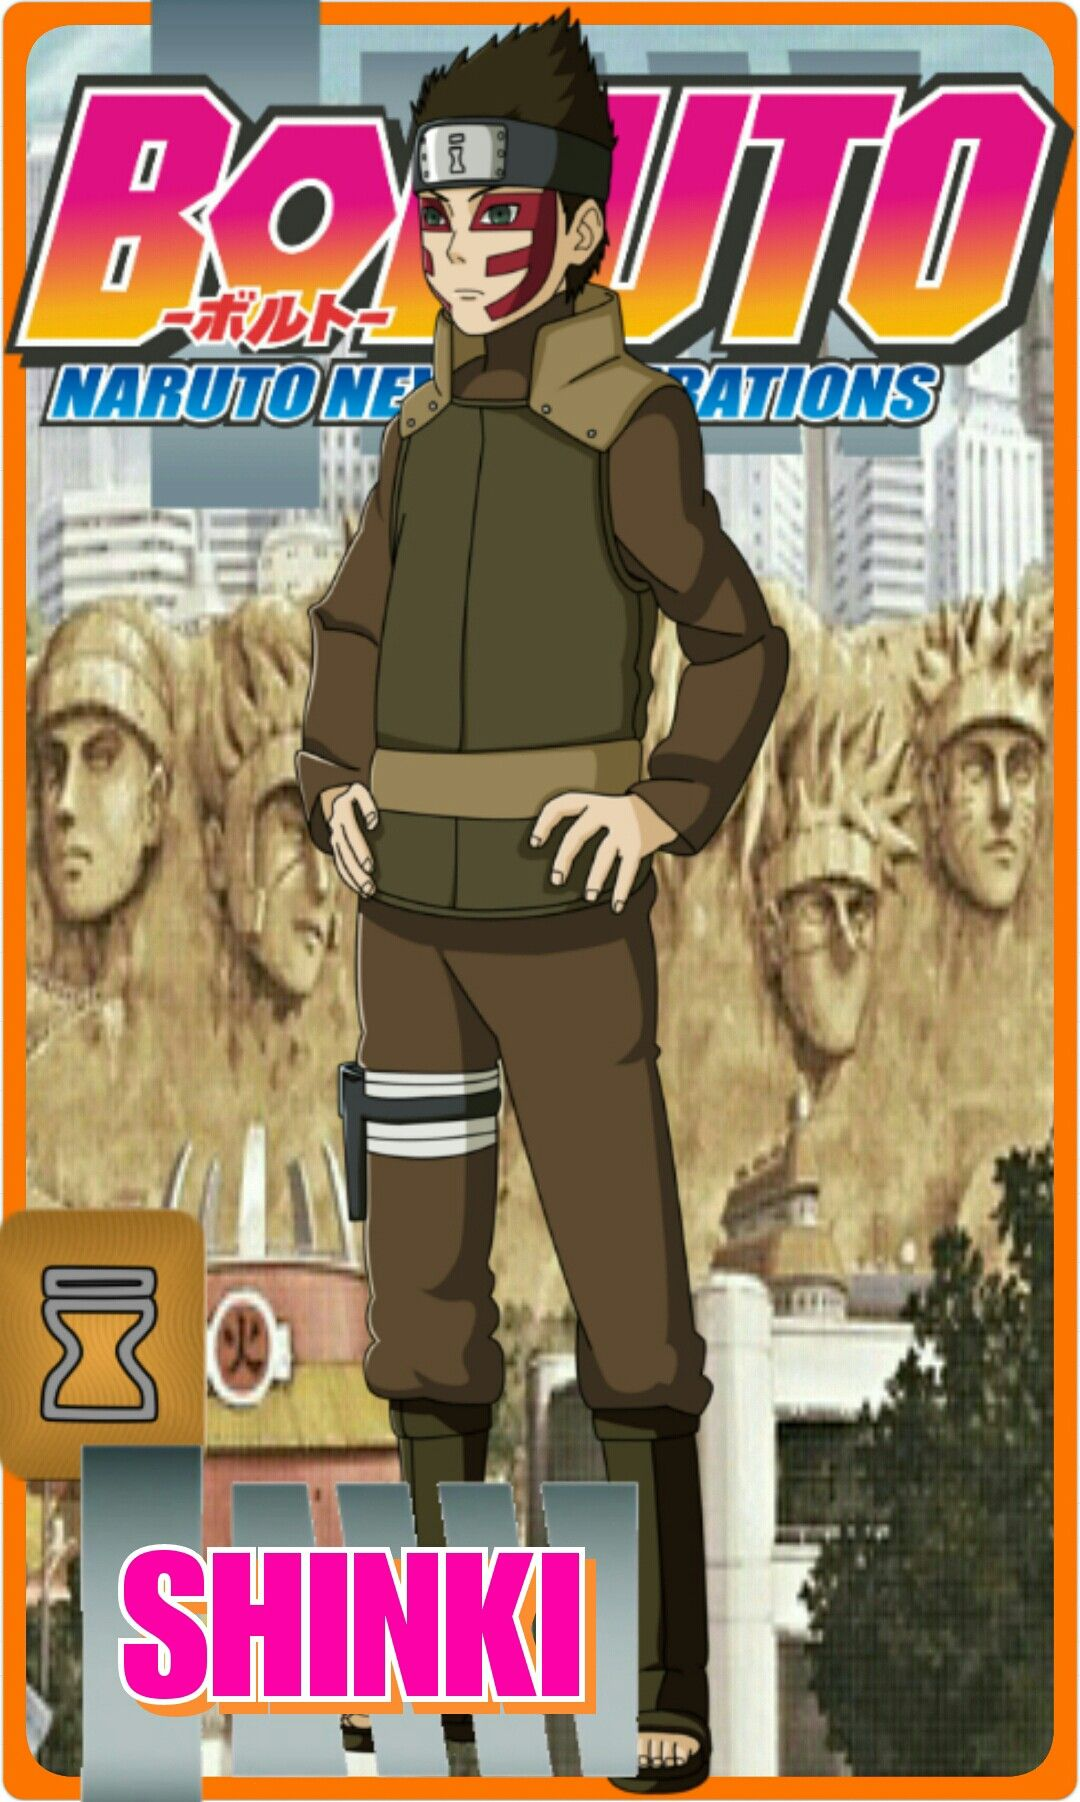 tsunade adopts naruto fanfiction